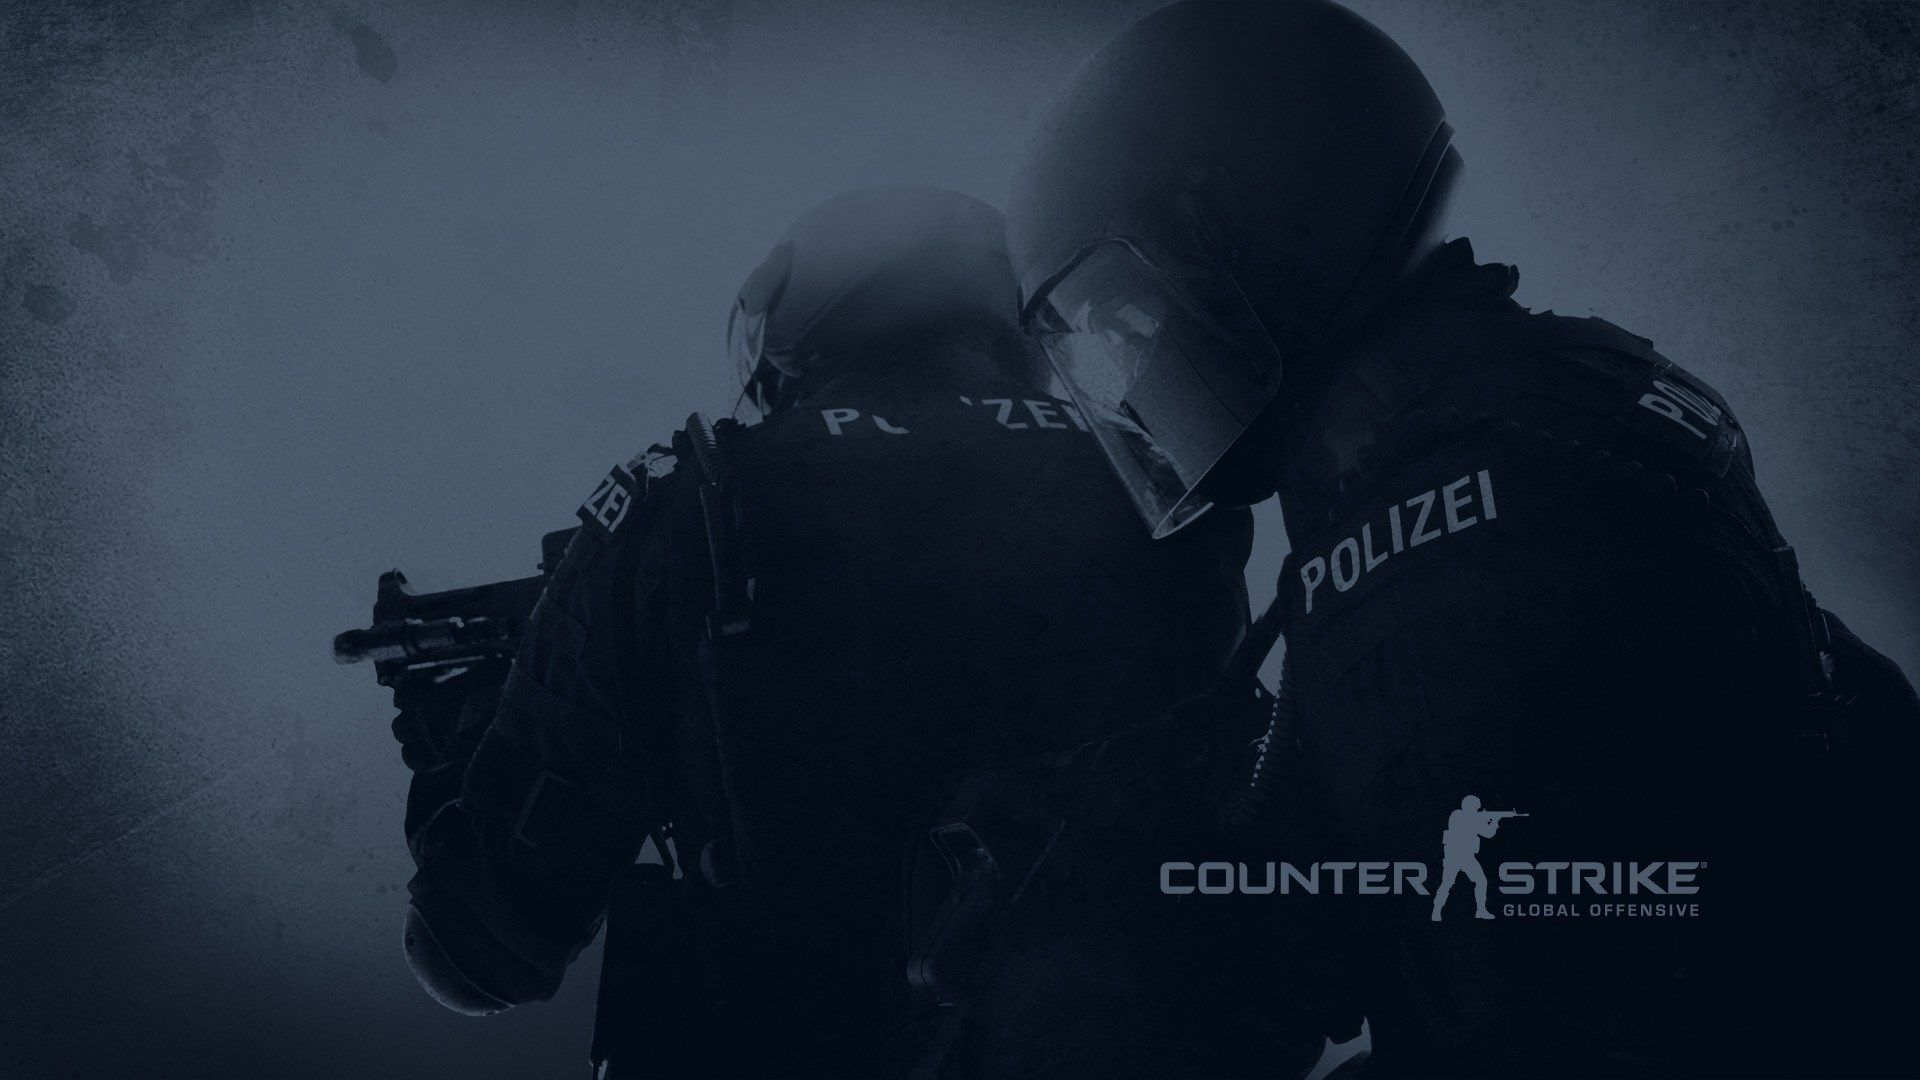 Computer Wallpaper For Counter Strike Global Offensive 211 Kb Hansford Holiday Hd Wallpaper Global Offensive